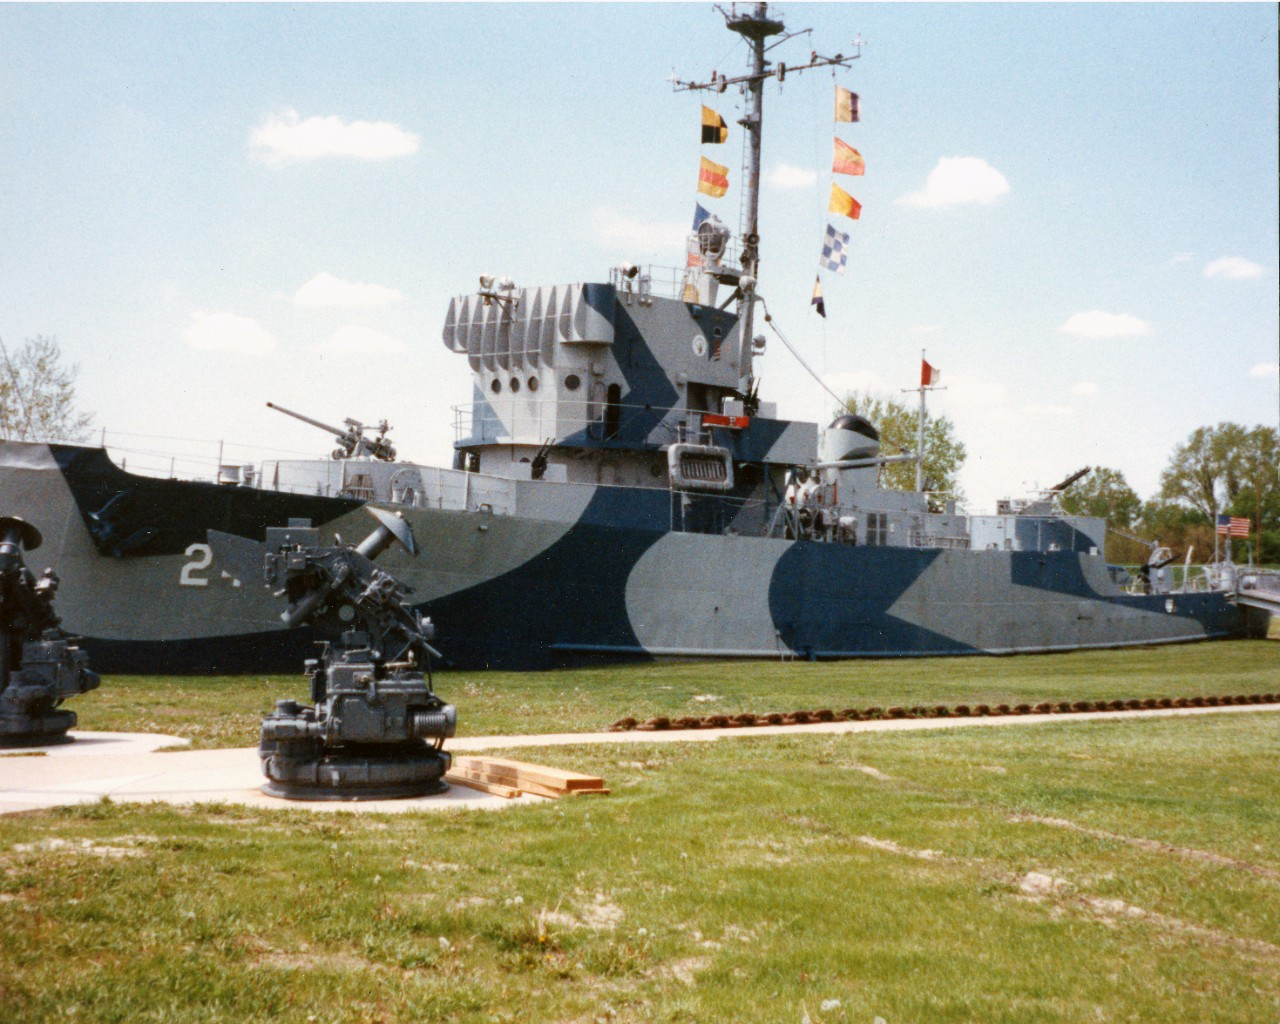 Collection photo # S-556-A.01 - USS Hazard (AM-240) on exhibit at Freedom Park, Omaha, NE